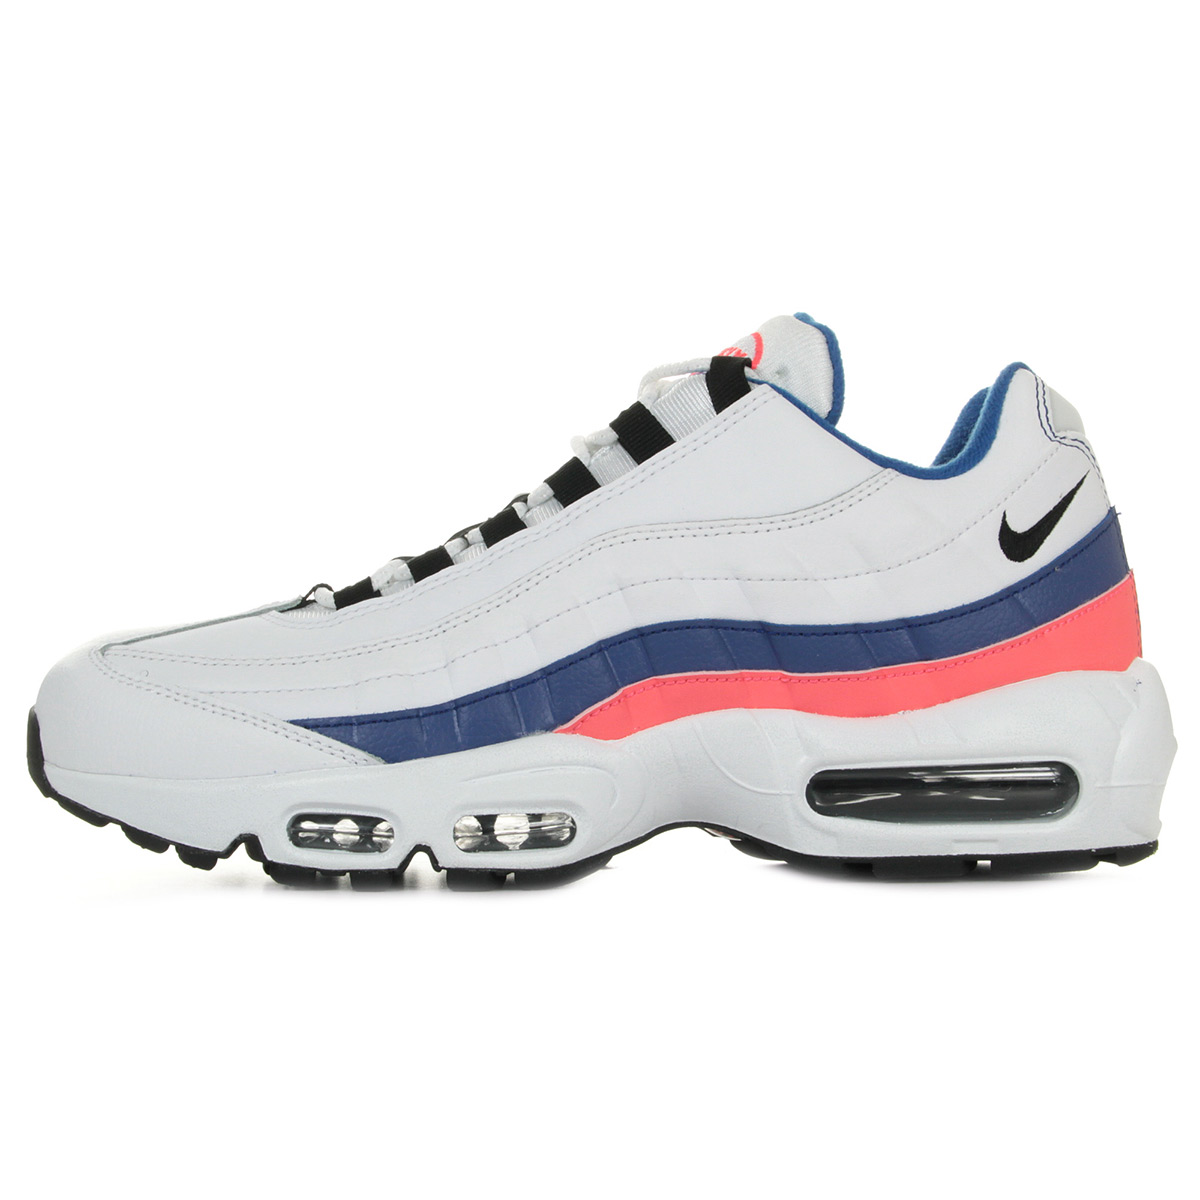 Nike Air max 95 Essential 749766106, Baskets mode homme